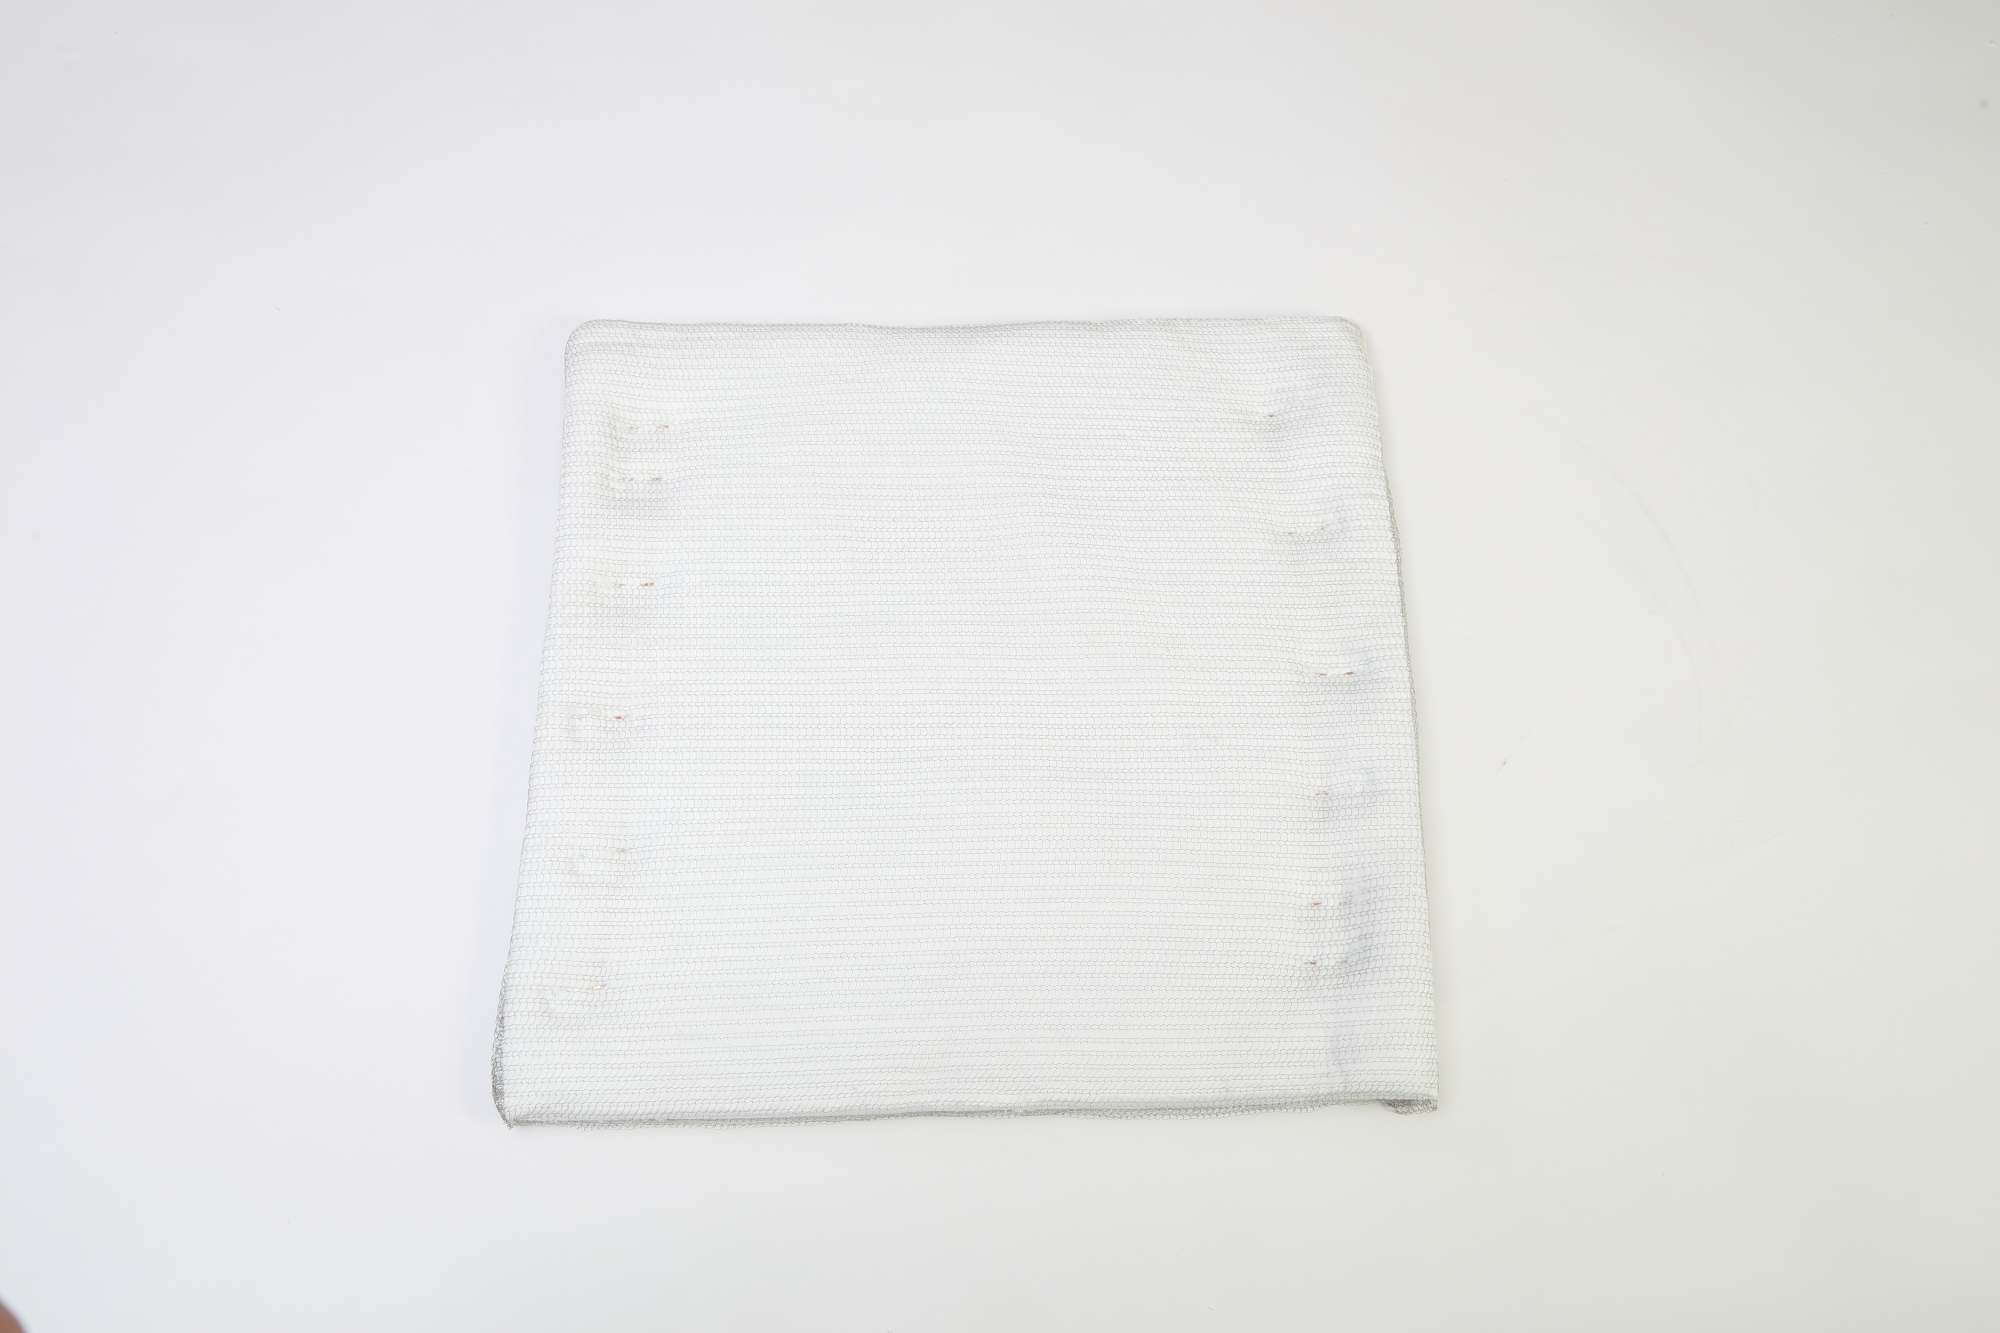 Image of Ceramic fibre insulation blanket 96kg/m³ in stainless steel mesh 25x600x600mm.